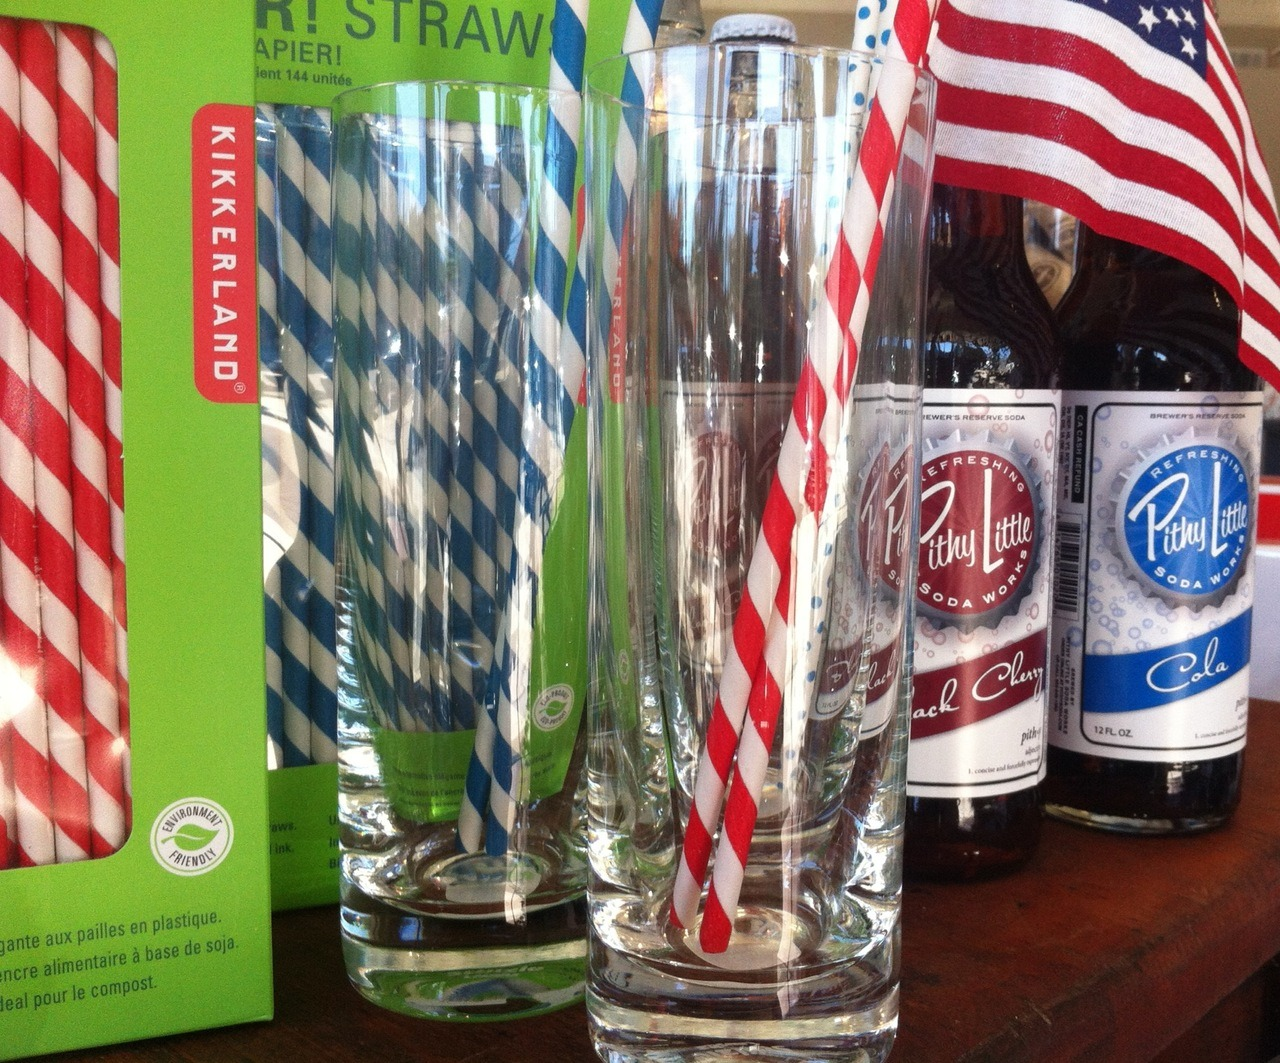 {Classic Americana} Old Fashioned All American Sodas, Paper Straws & Cocktail Glasses  Pictured: Pithy Little Soda Works Old Fashioned Cola & Black Cherry Sodas, Kikkerland Paper Straws, Stozle Collins Glasses